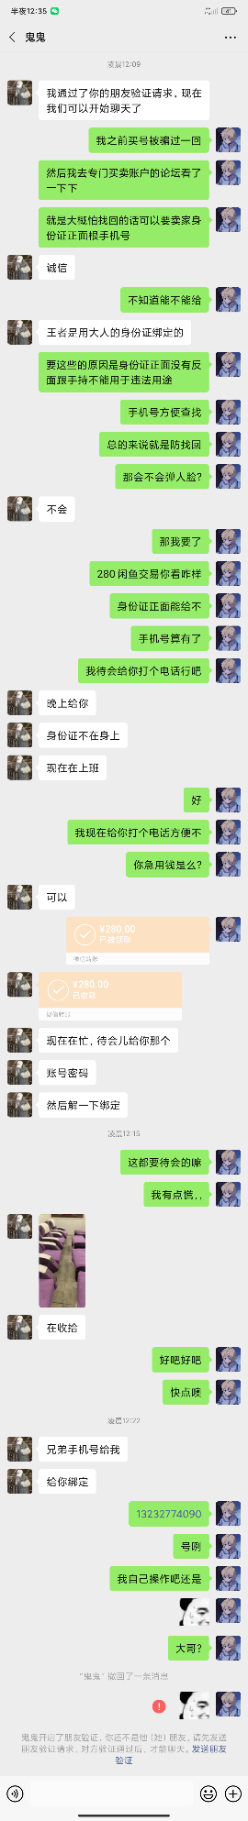 Screenshot_2020-07-28-00-35-23-811_com.tencent.mm.png